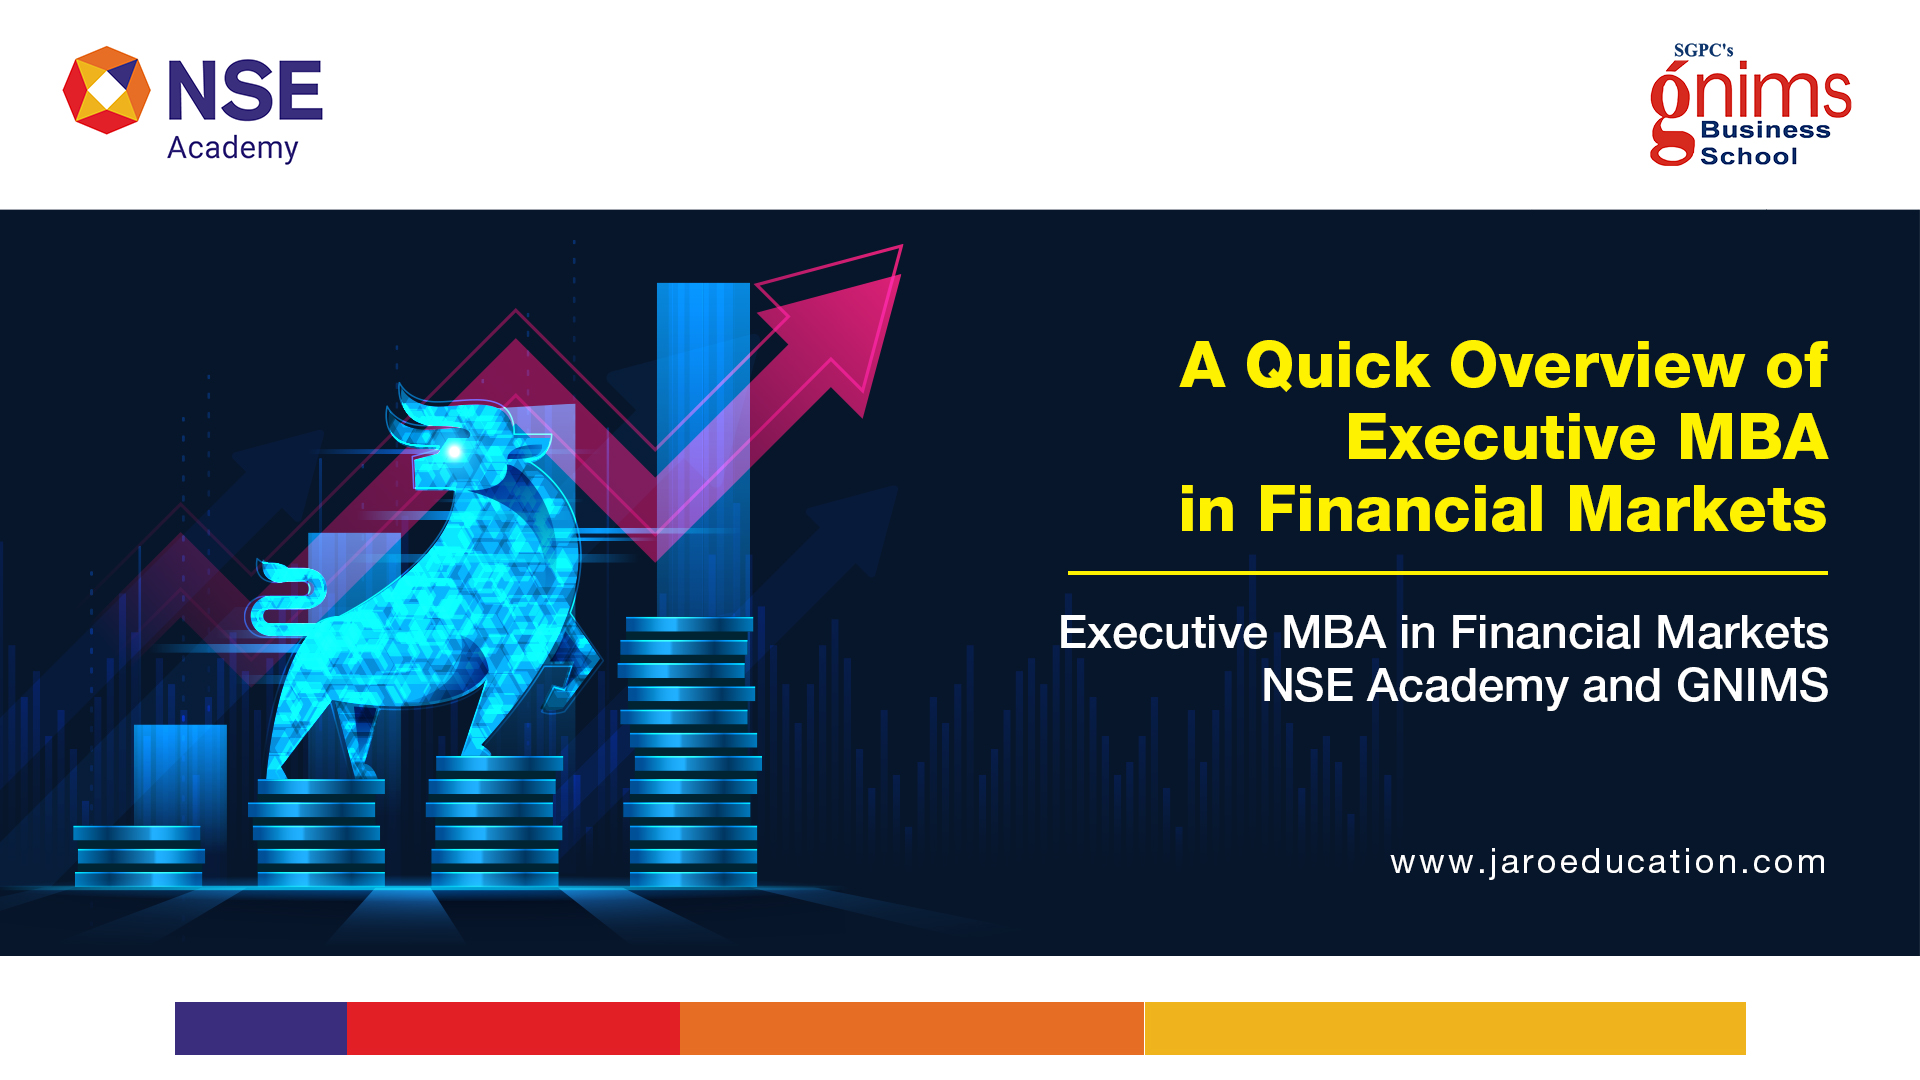 Executive MBA in Financial Markets, by NSE Academy and GNIMS